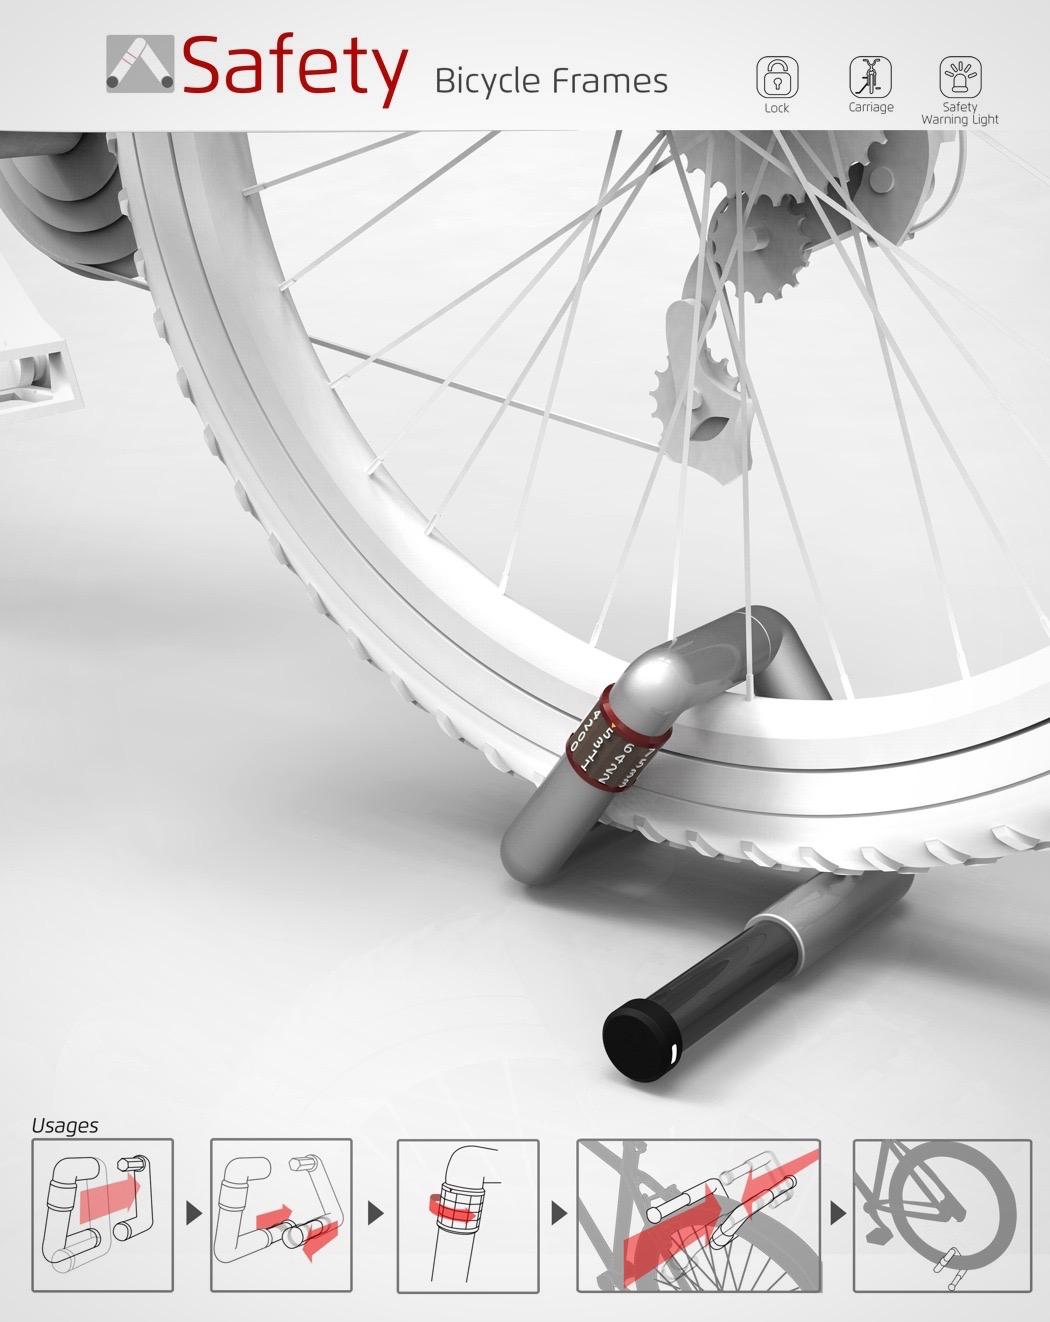 safety_bicycle_frames_02